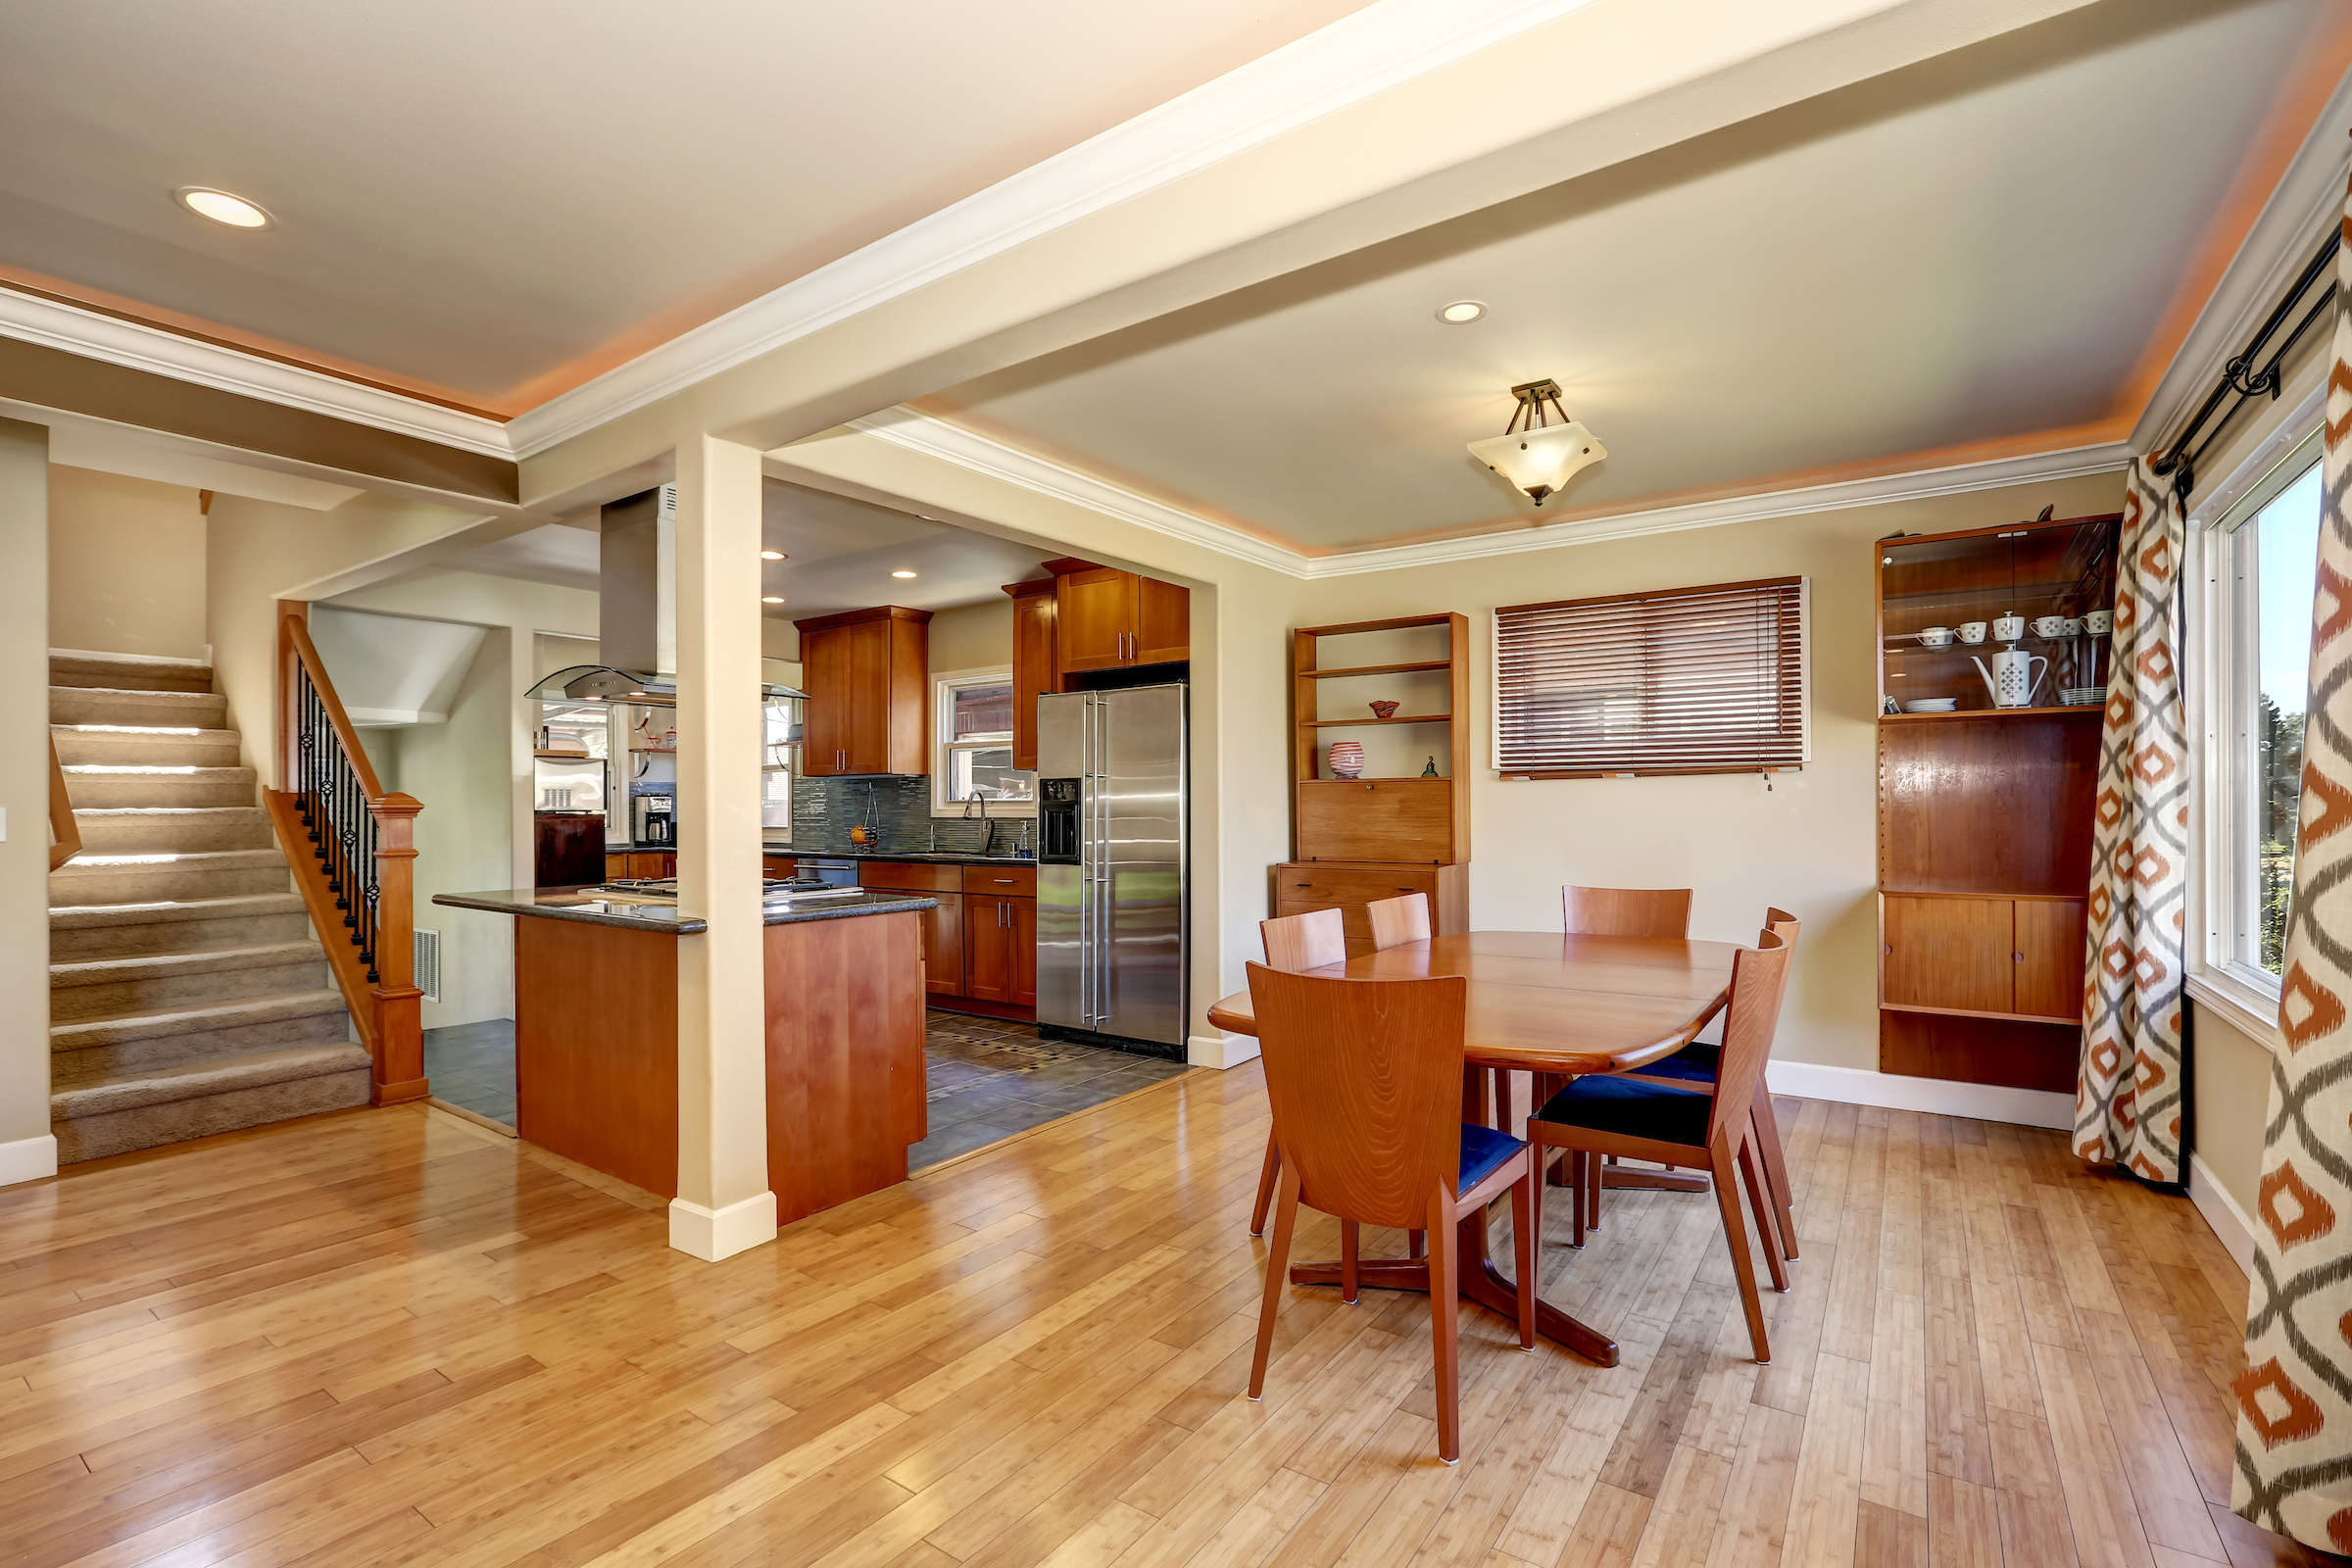 What Makes A Home Style: Defining The Craftsman Home